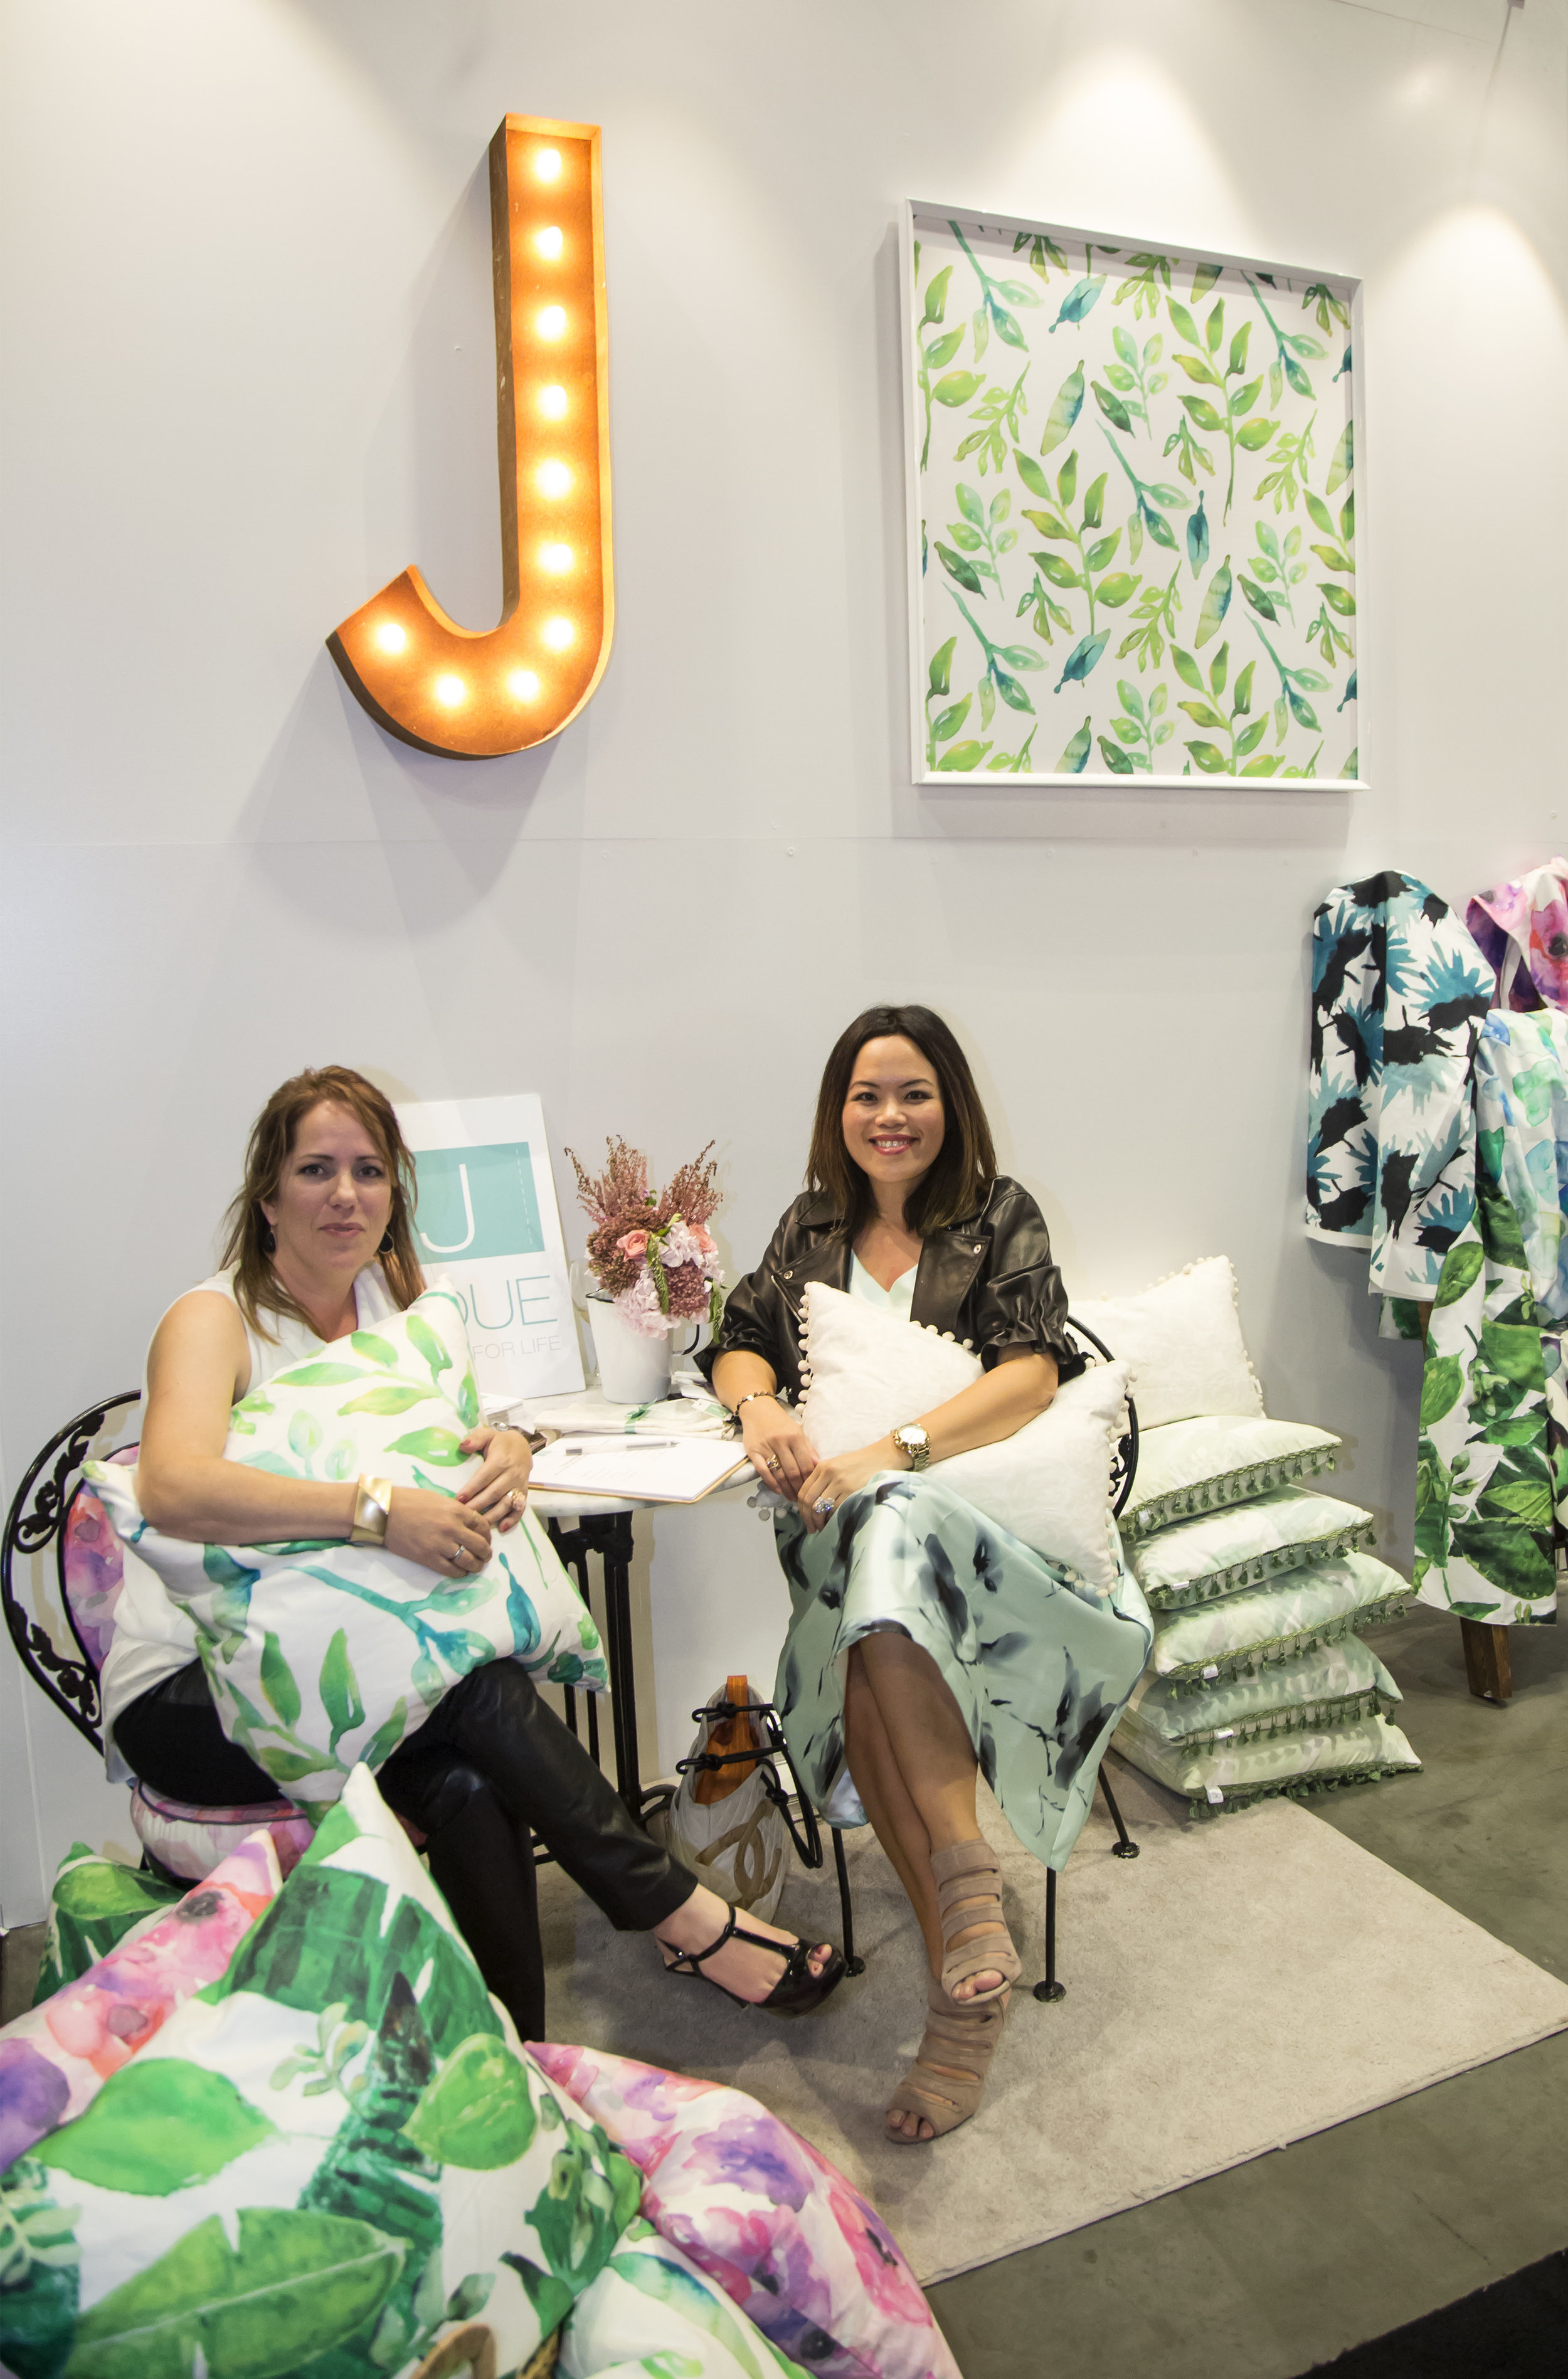 Alison and I in our booth at IDS Vancouver. We had the smallest booth on the show floor but the most colourful one that attracted a lot of attention!  Photo: Airisa Photography